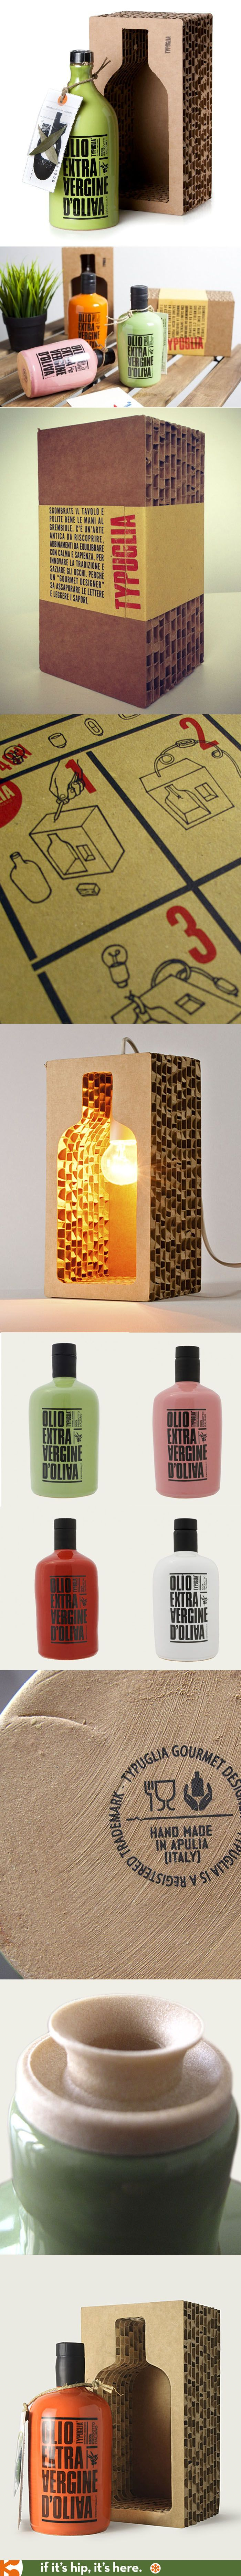 Typuglia Extra Virgin Olive Oils come in handmade ceramic containers packed into a cardboard box that transforms into a light!